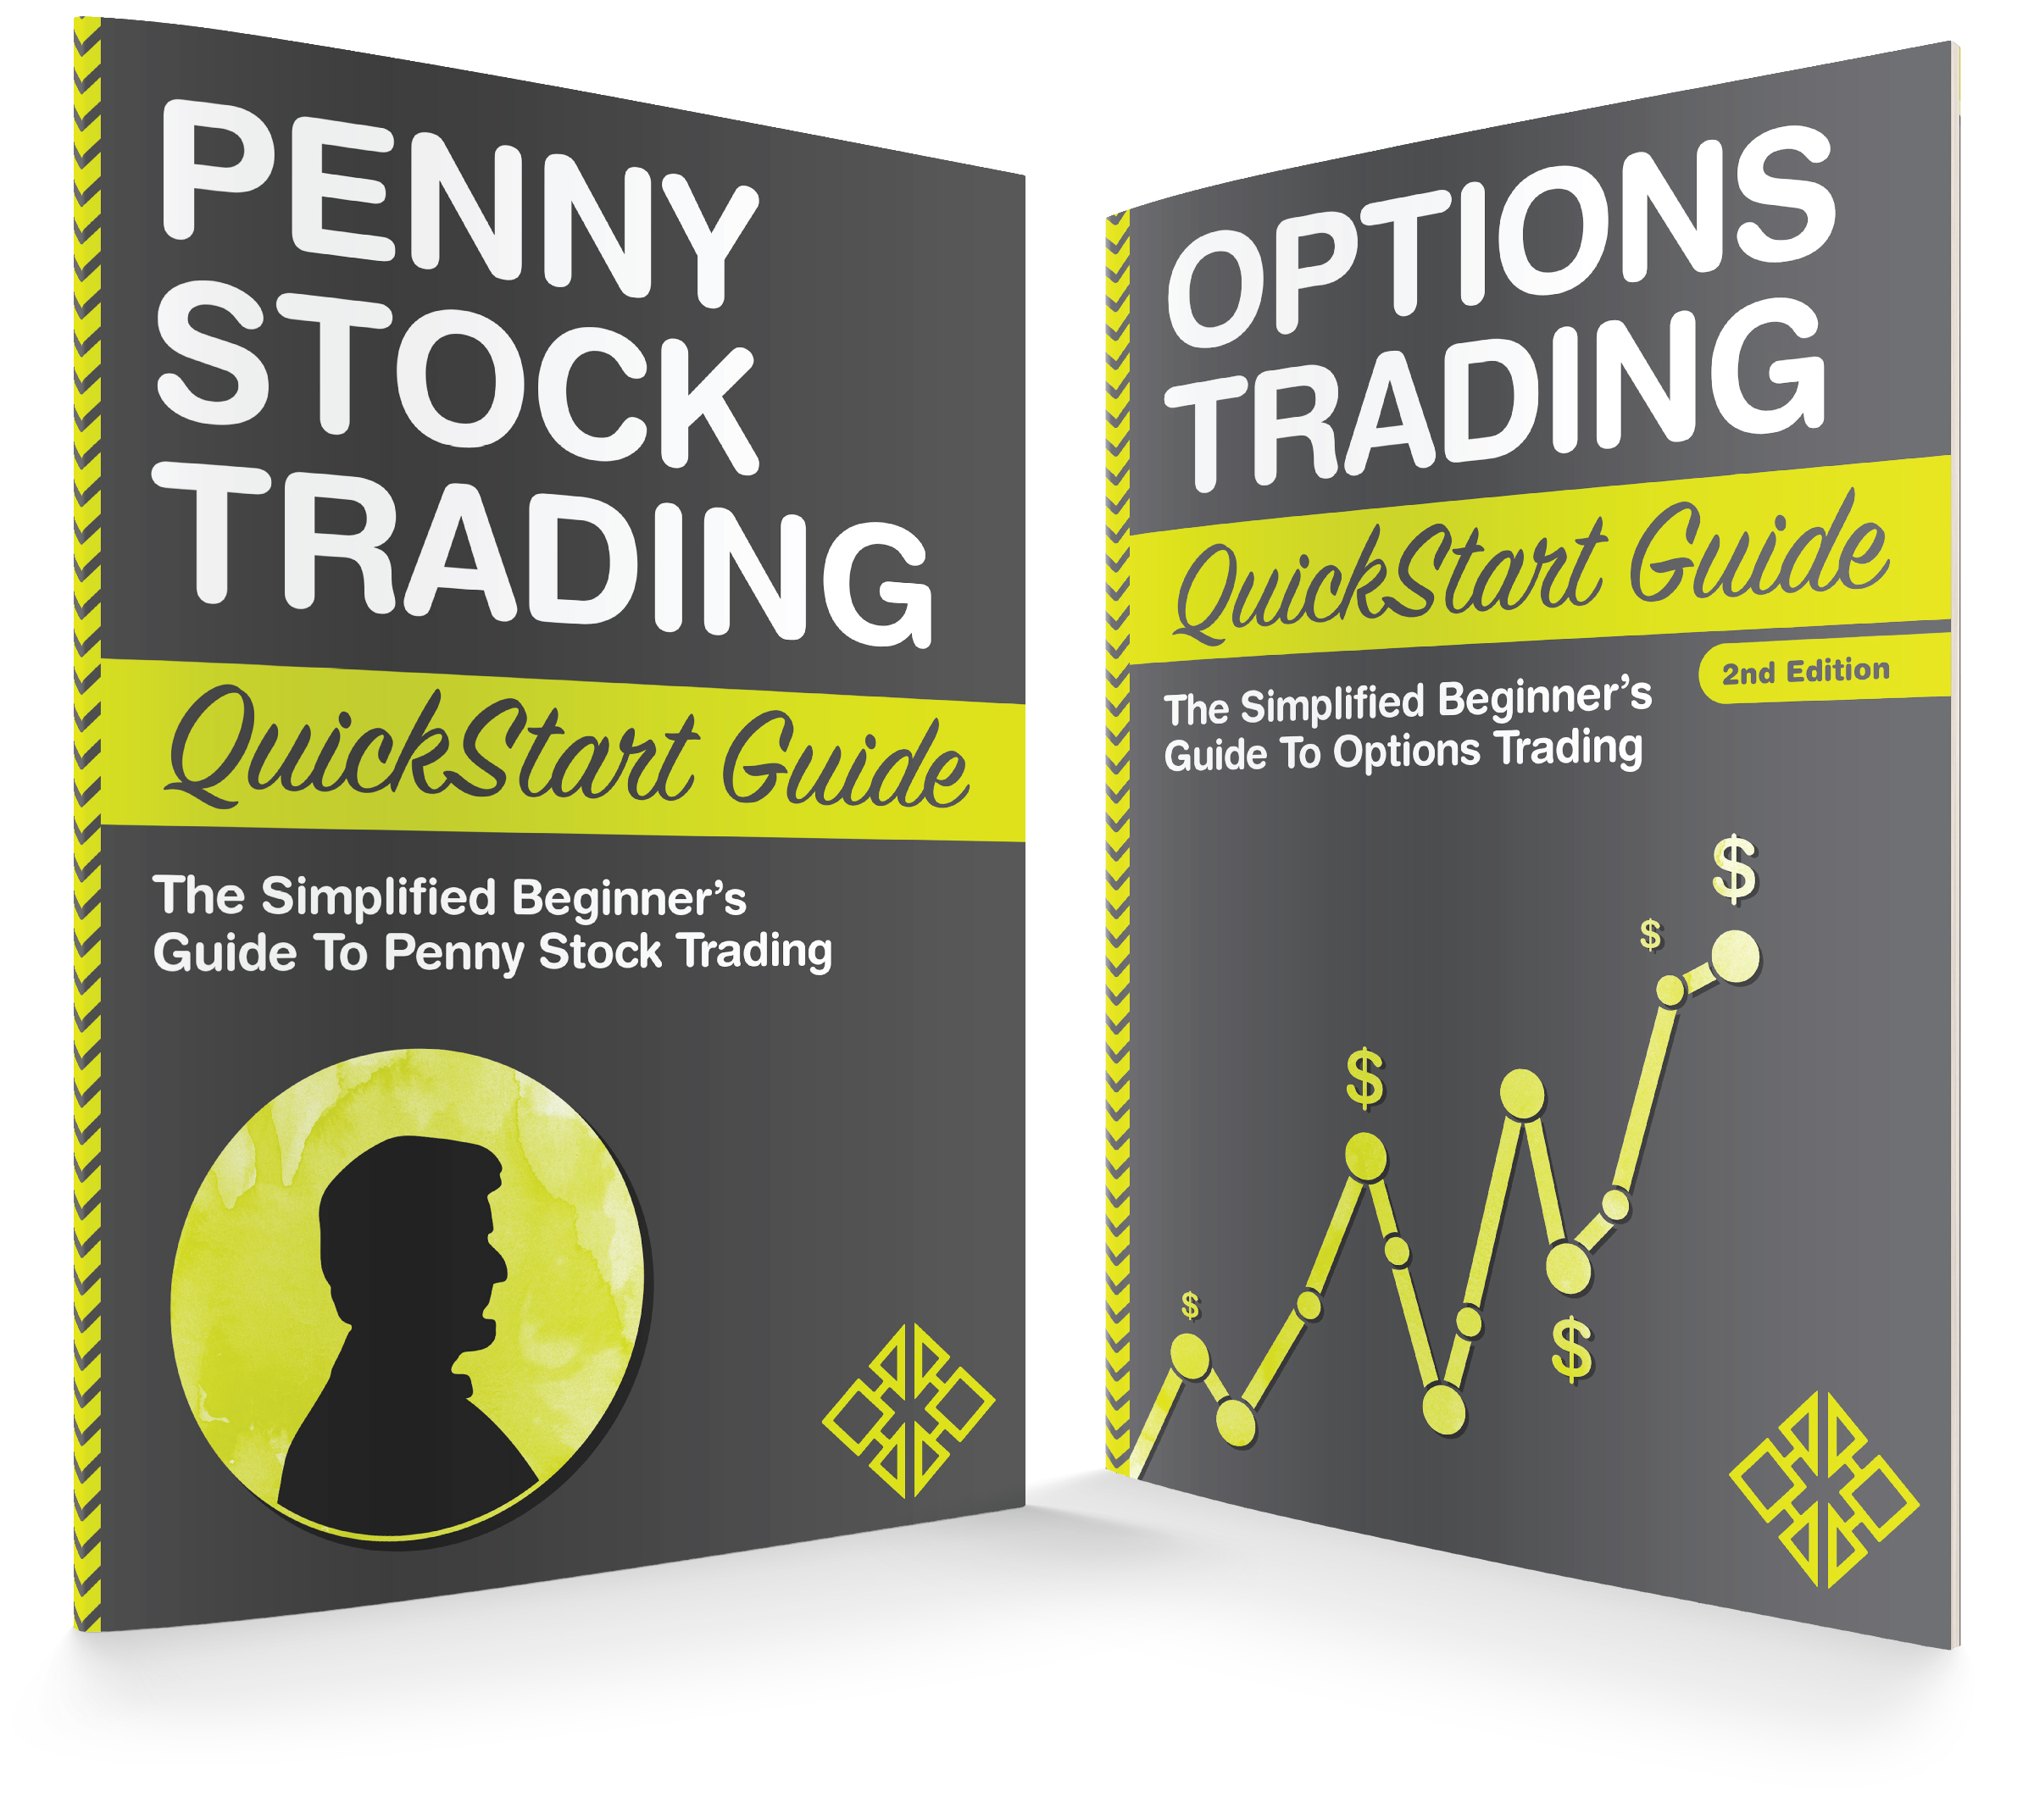 Best options trading books 2016